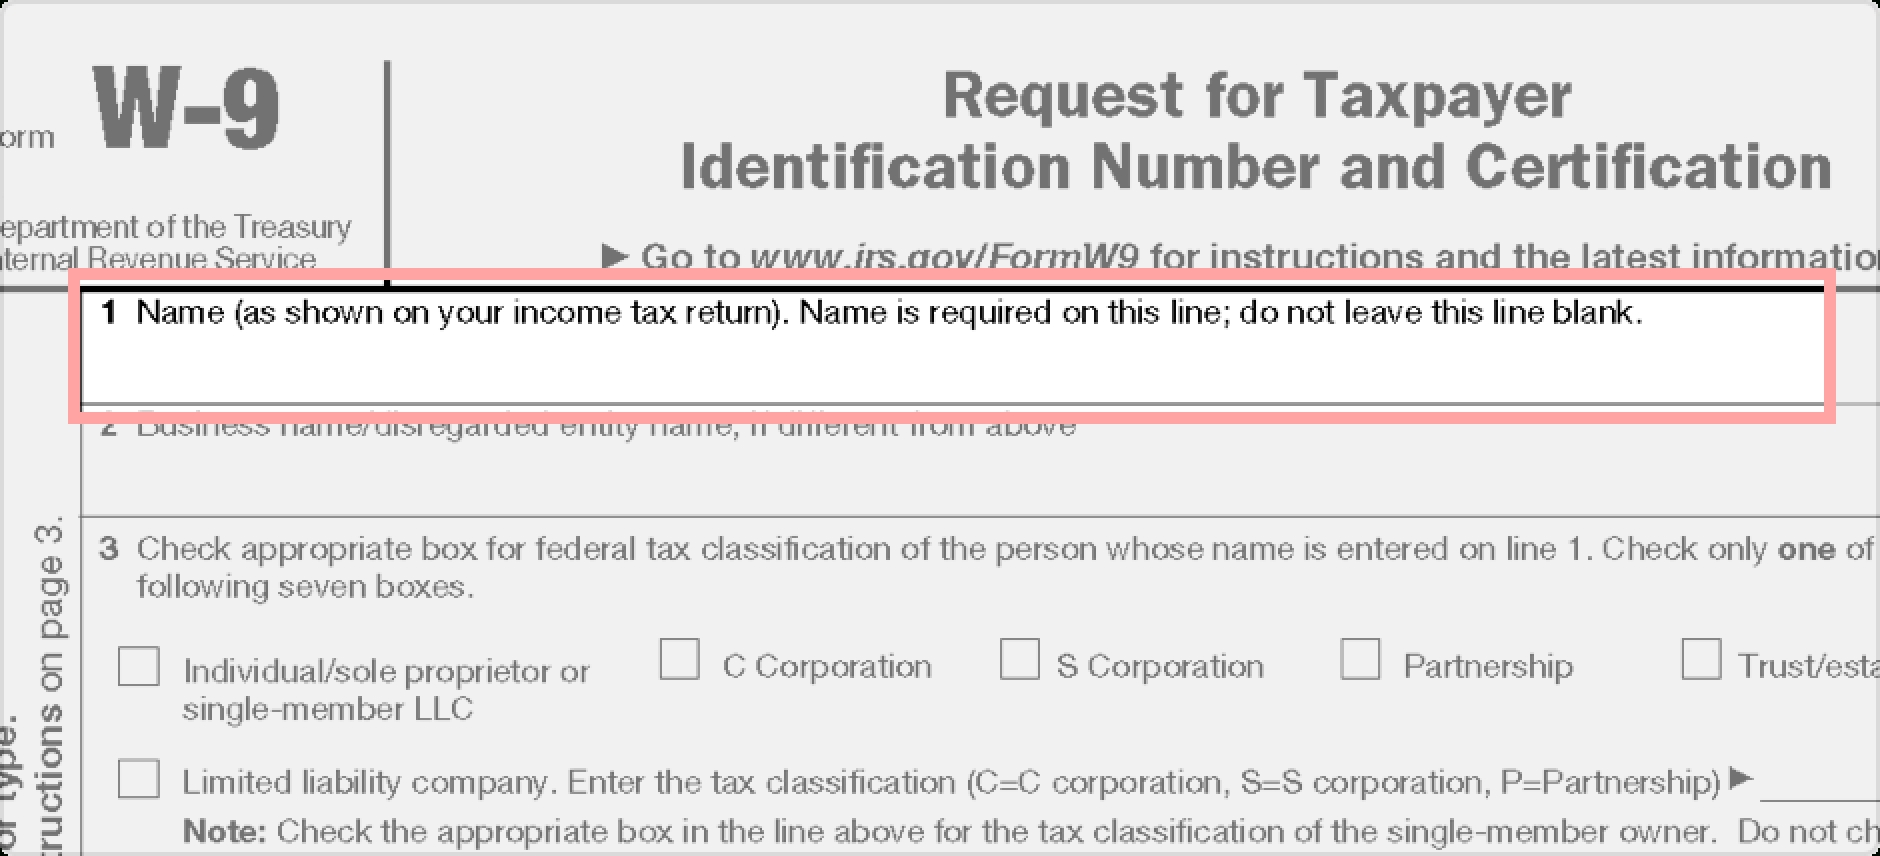 W-9 Form: Fillable, Printable, Download Free. 2020 Instructions-Free Printable 2021 W 9